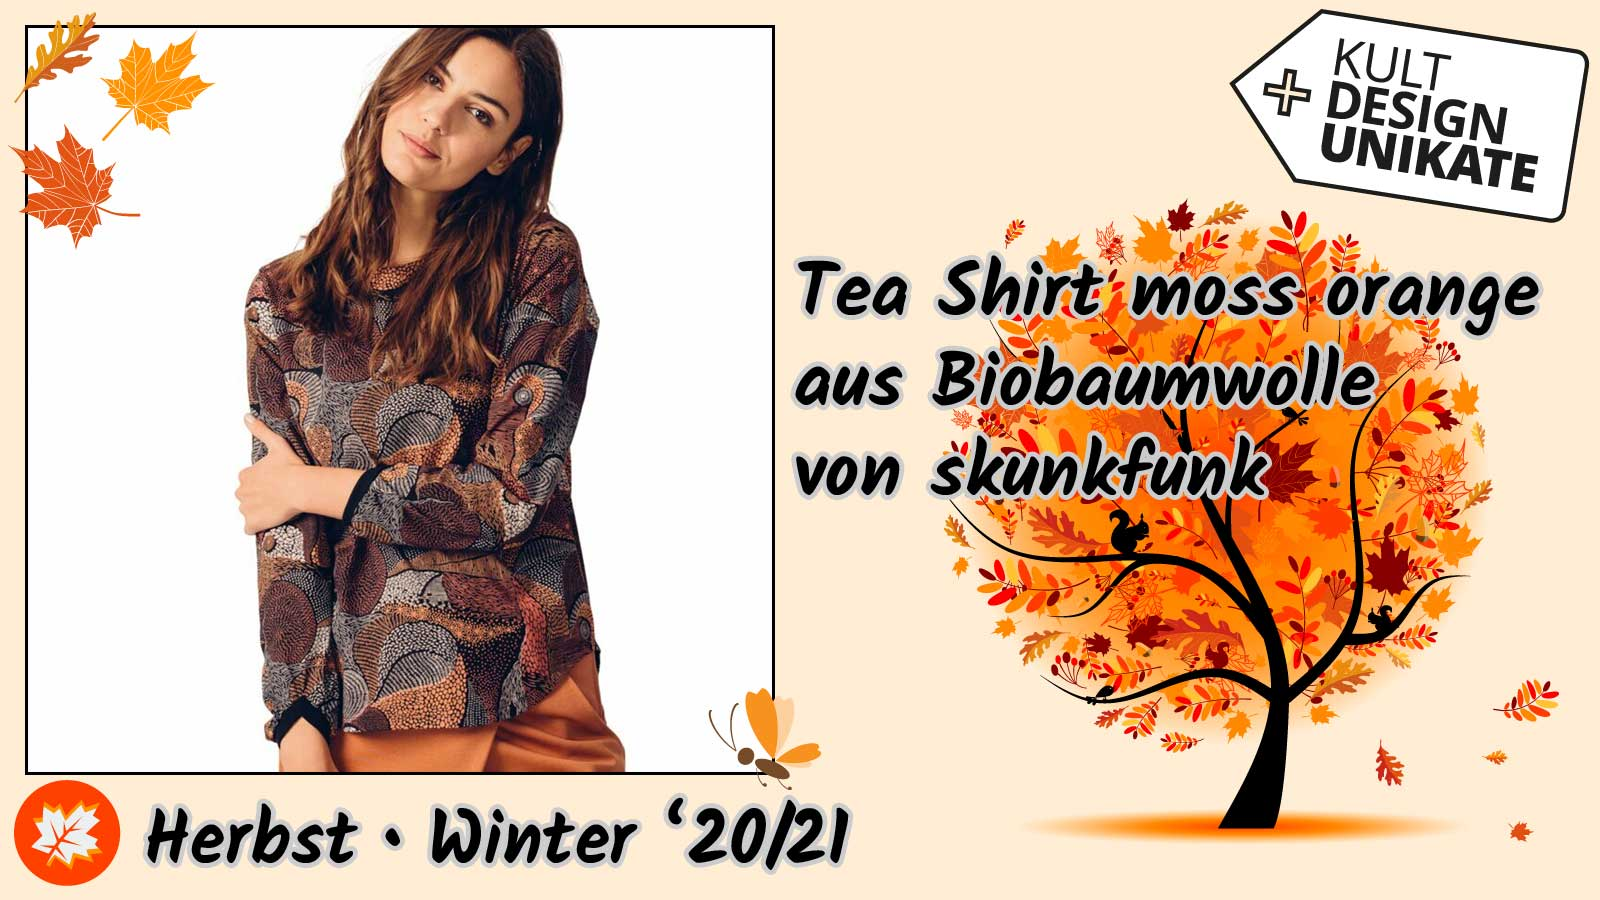 skunkfunk-Tea-Shirt-moss-orange